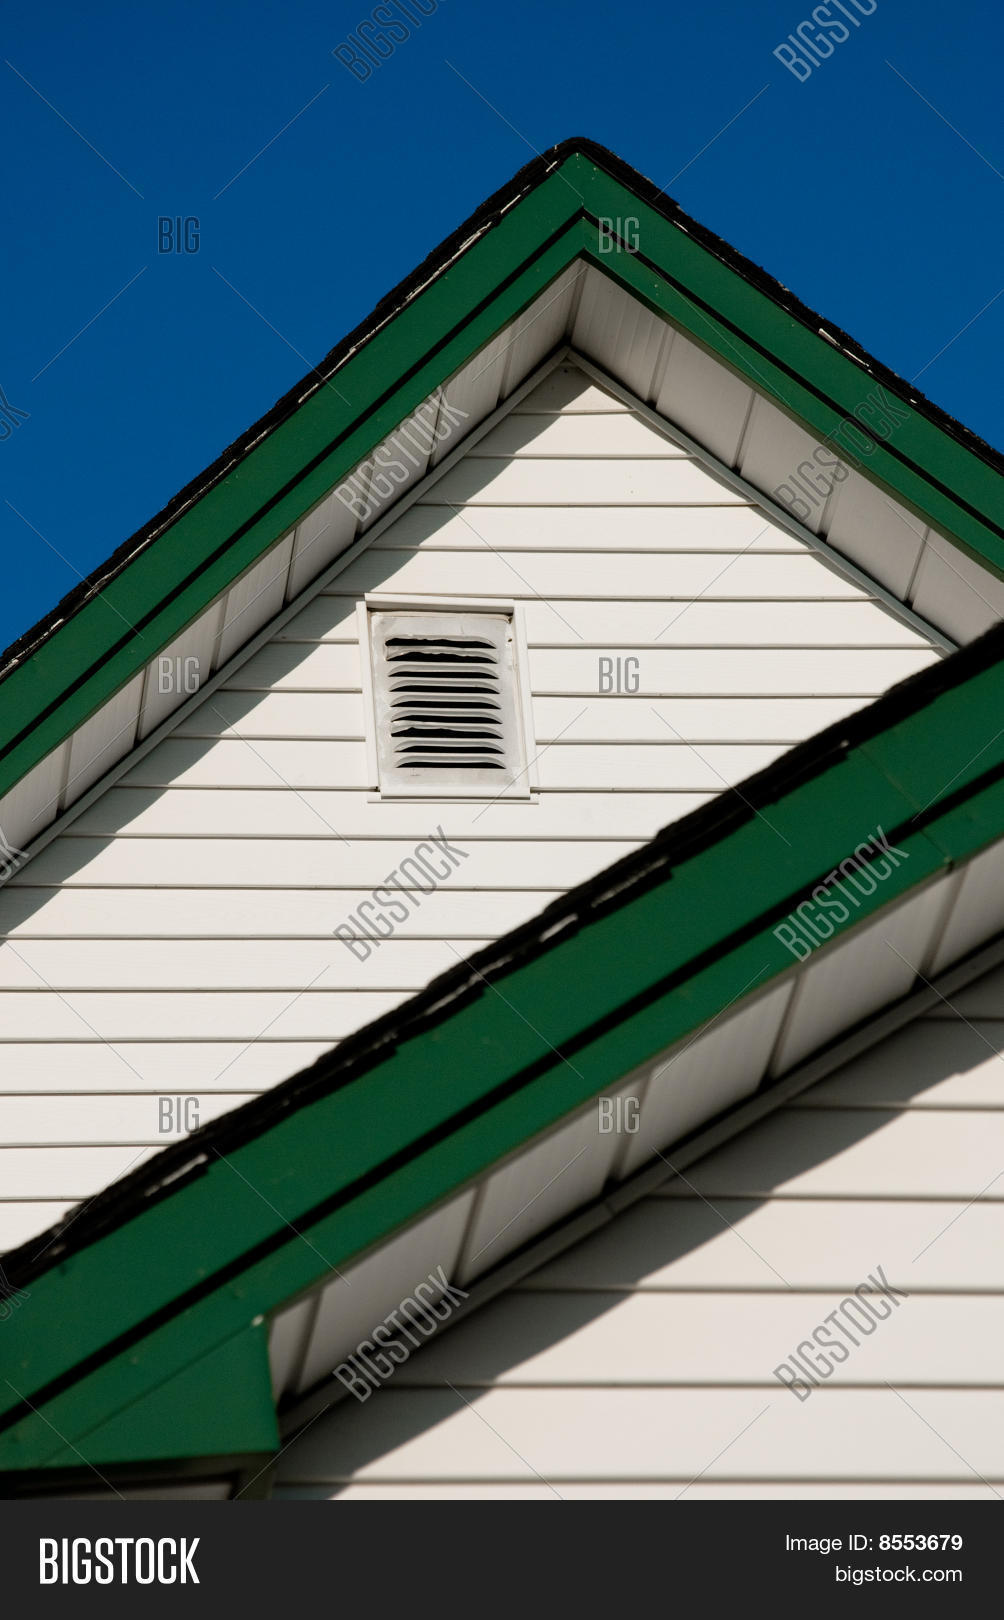 Farmhouse Roof Peak With White Siding And Green Trim Against A Blue Sky